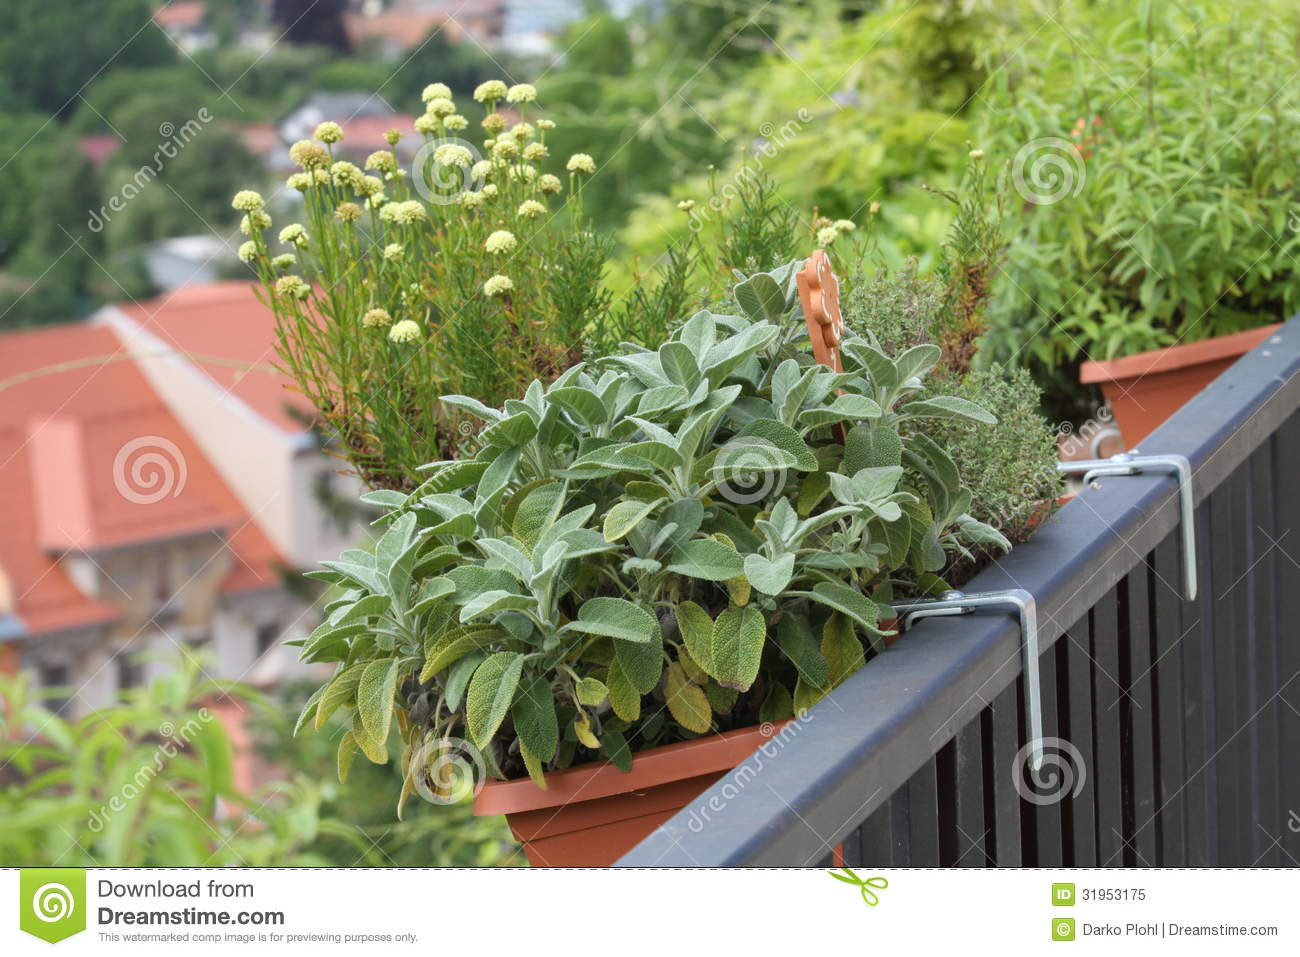 Apartment Plants Ideas De Tuin Van Balkonkruiden Binnen Aan De Potten Stock